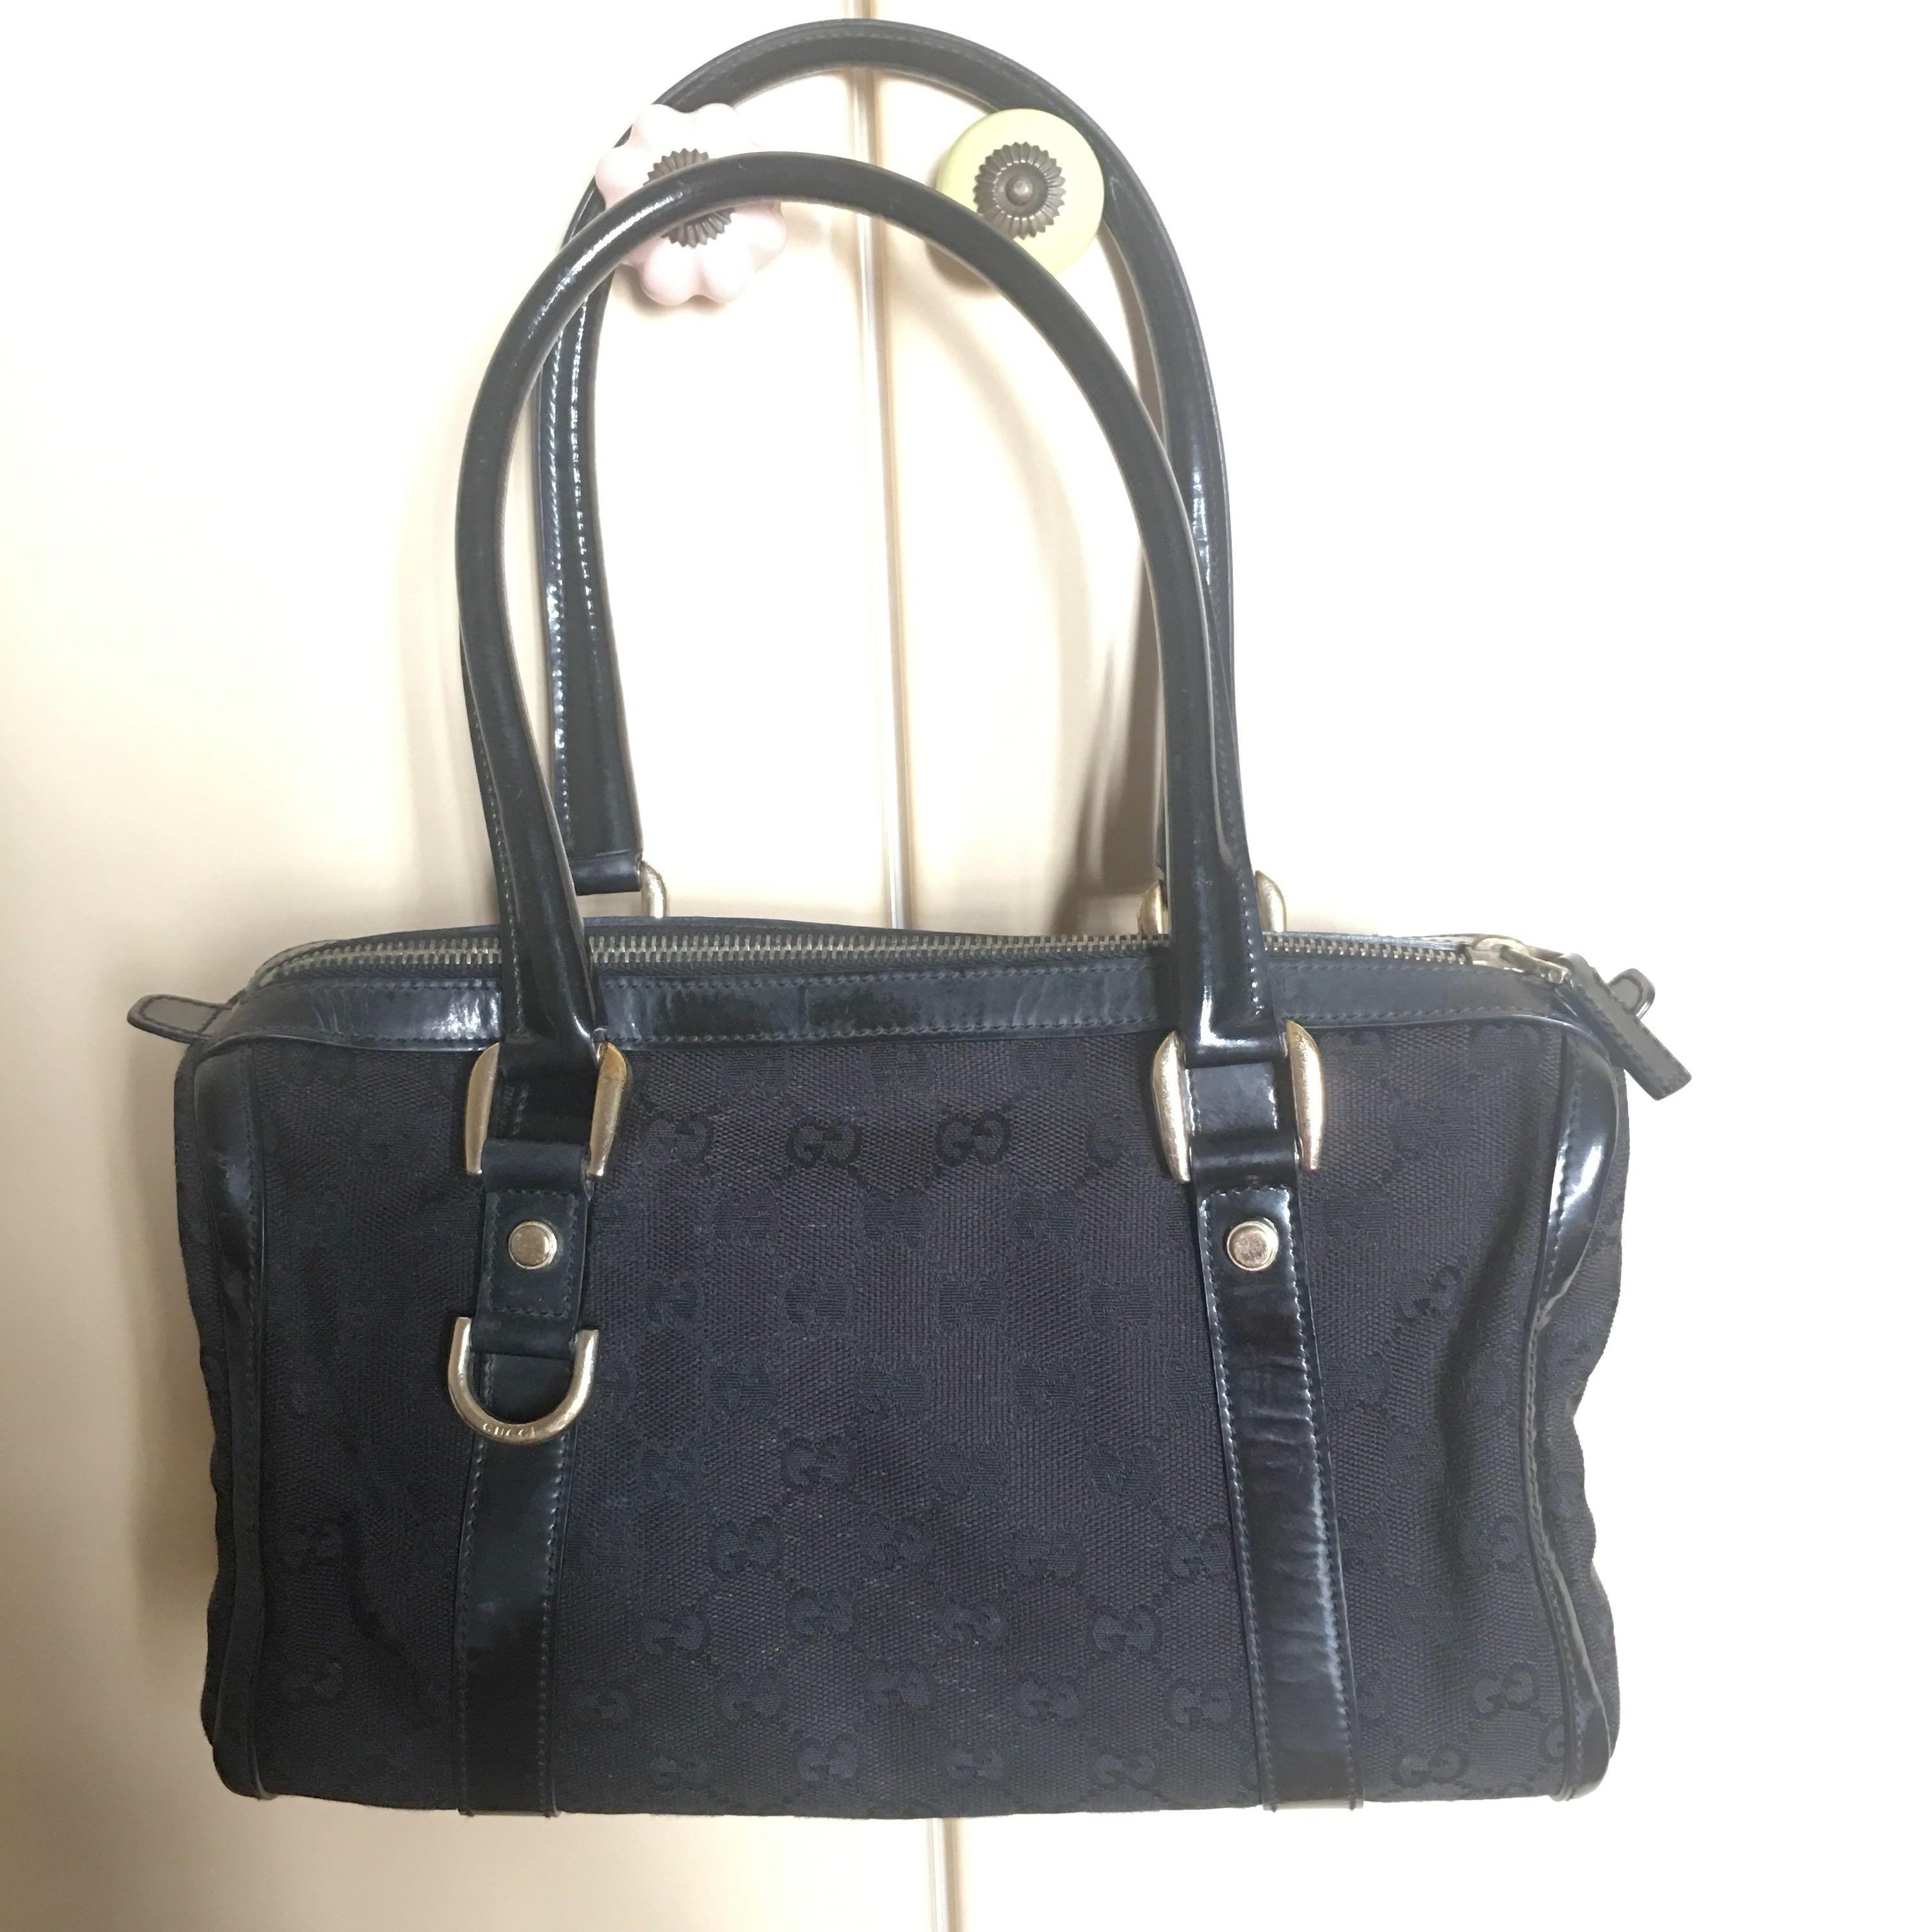 Clearance Vintage Gucci Boston Bag